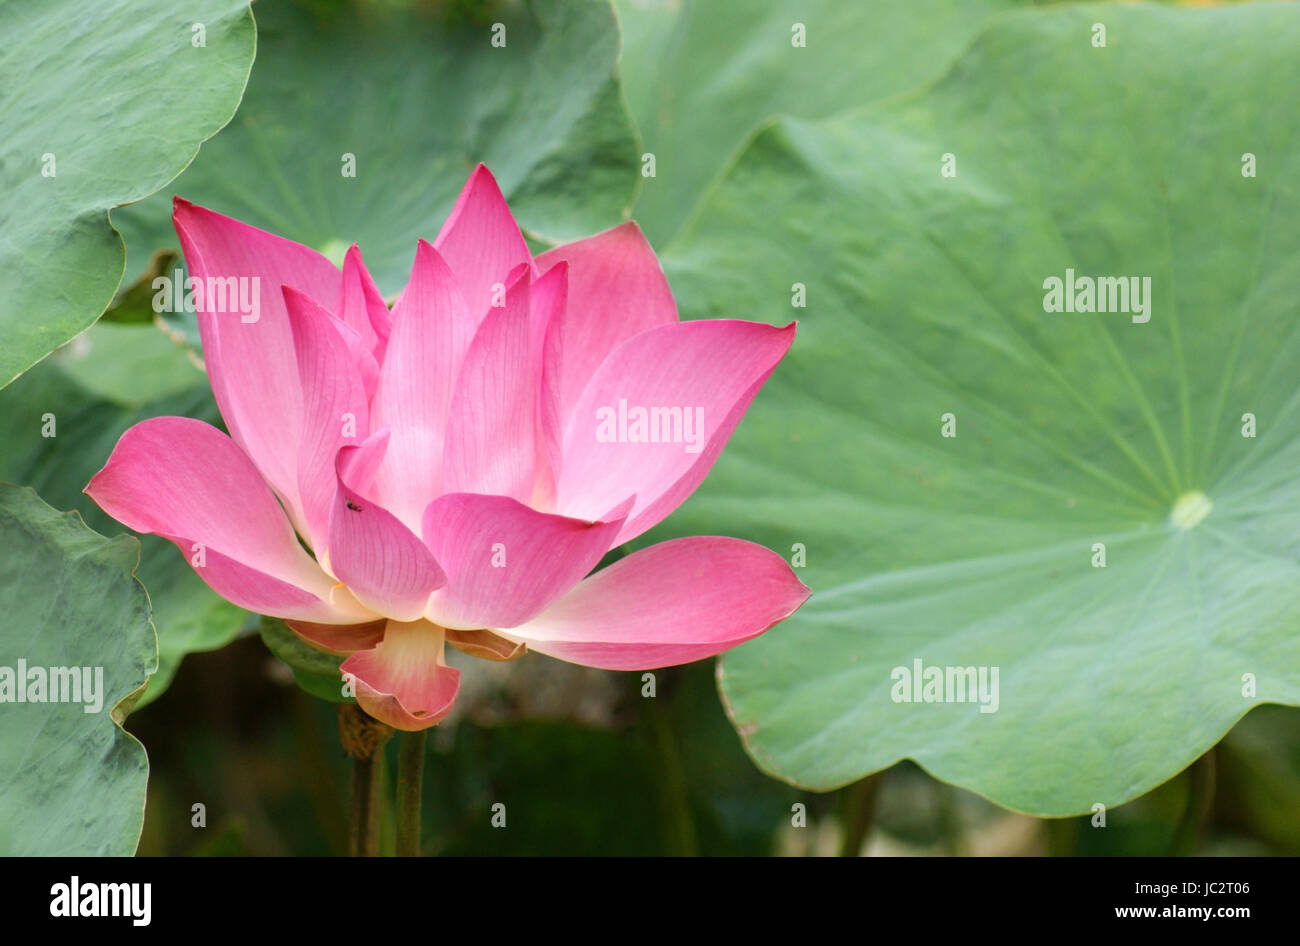 Pink lotus flower head and leaves seen in thailand stock photo pink lotus flower head and leaves seen in thailand mightylinksfo